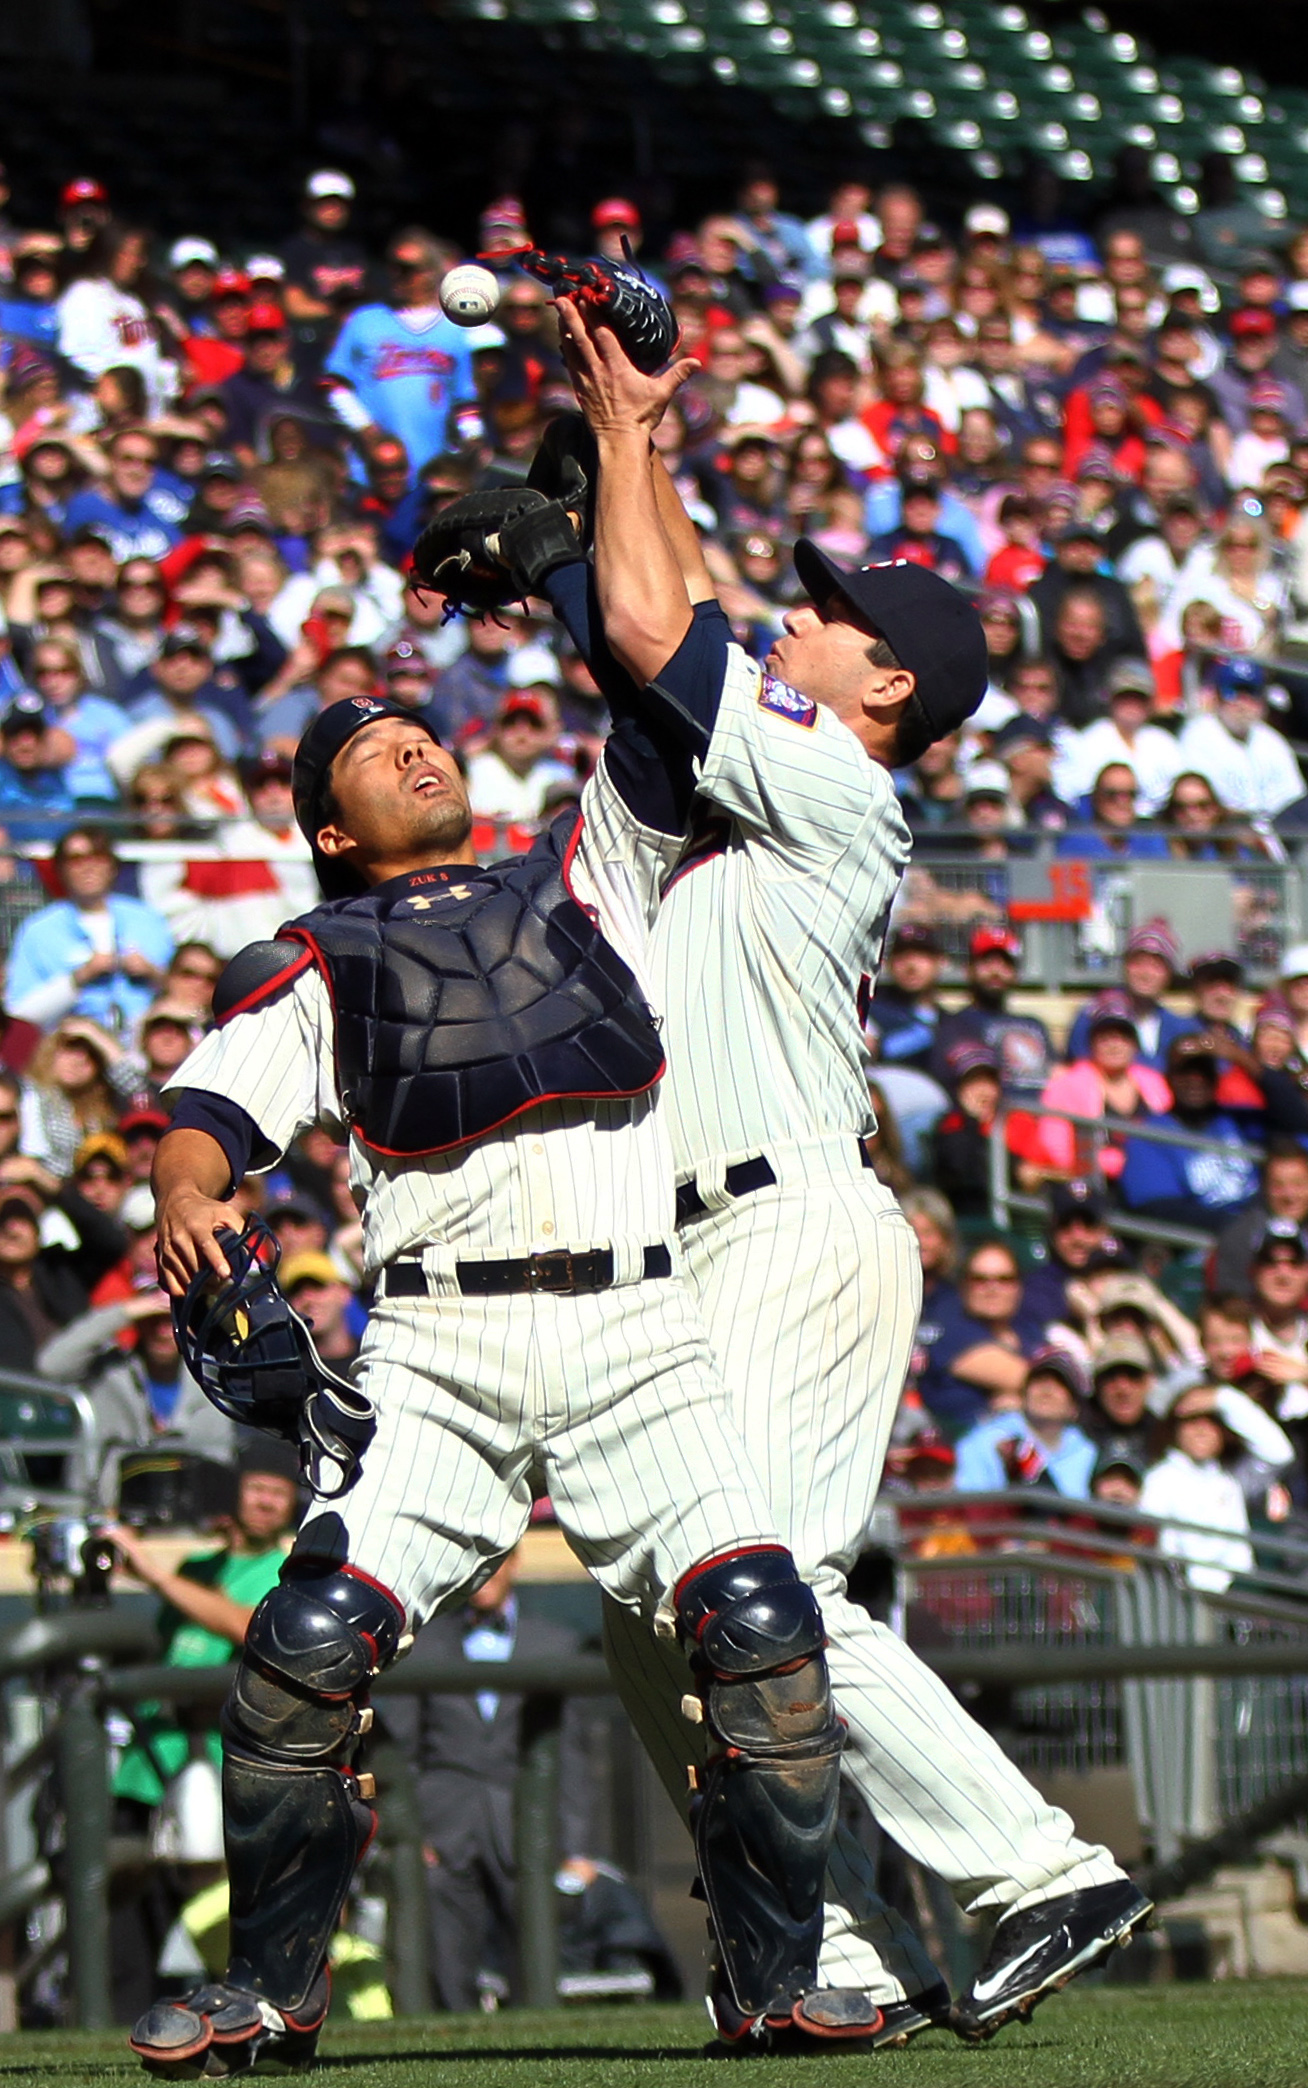 Minnesota Twins catcher Kurt Suzuki, left, and pitcher Tommy Milone collide while trying to catch a pop up hit by Kansas City Royals' Salvador Perez in the second inning of baseball game, Saturday, Oct. 3, 2015, in Minneapolis. Suzuki was given an error o